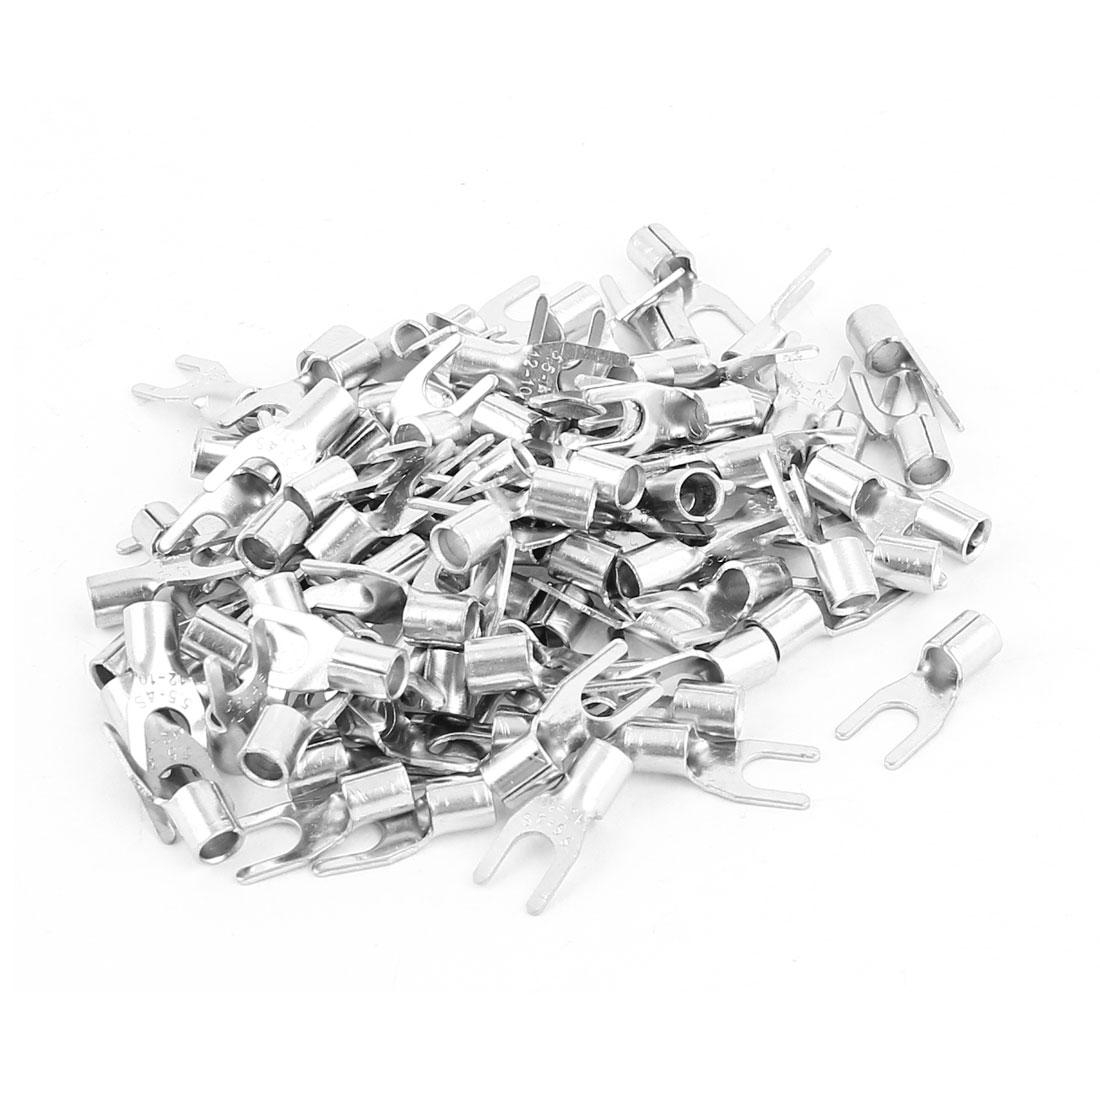 100pcs SNBS5.5-4 Fork Type Non-Insulated Spade Cable Terminals for AWG12-10